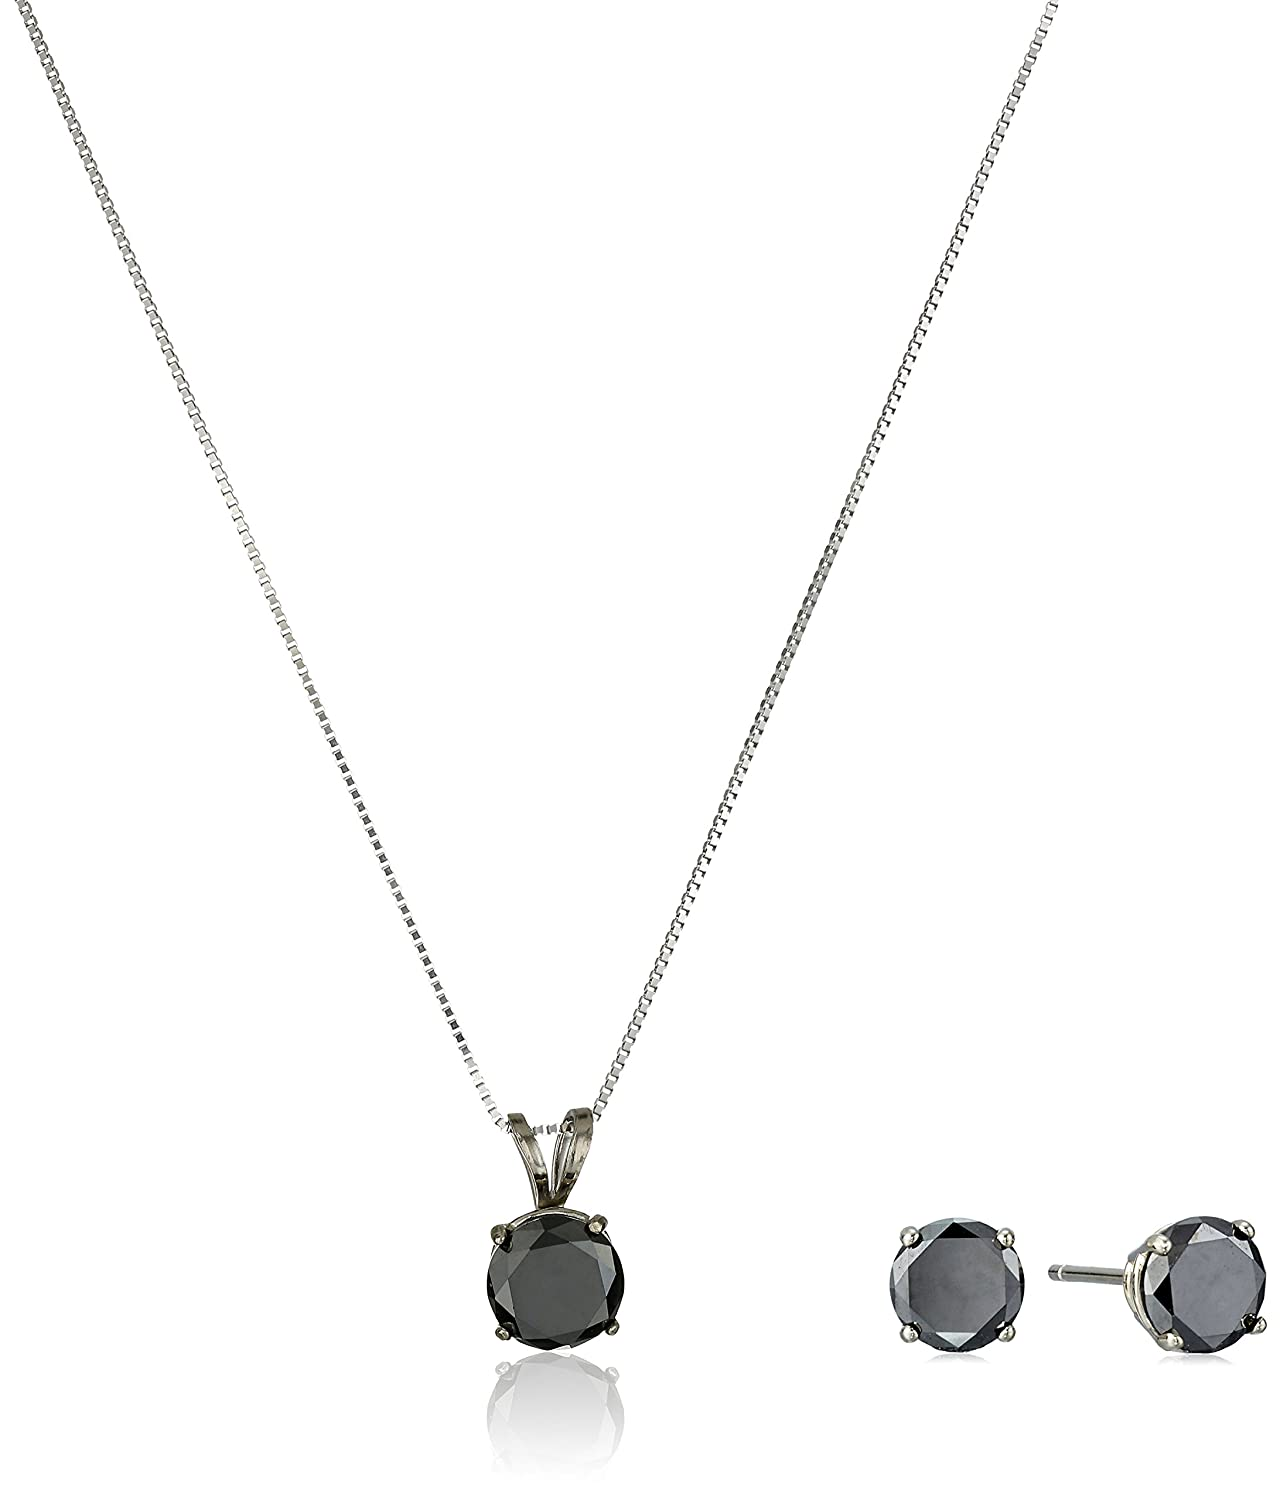 necklace wendy black diamond products pendant nichol